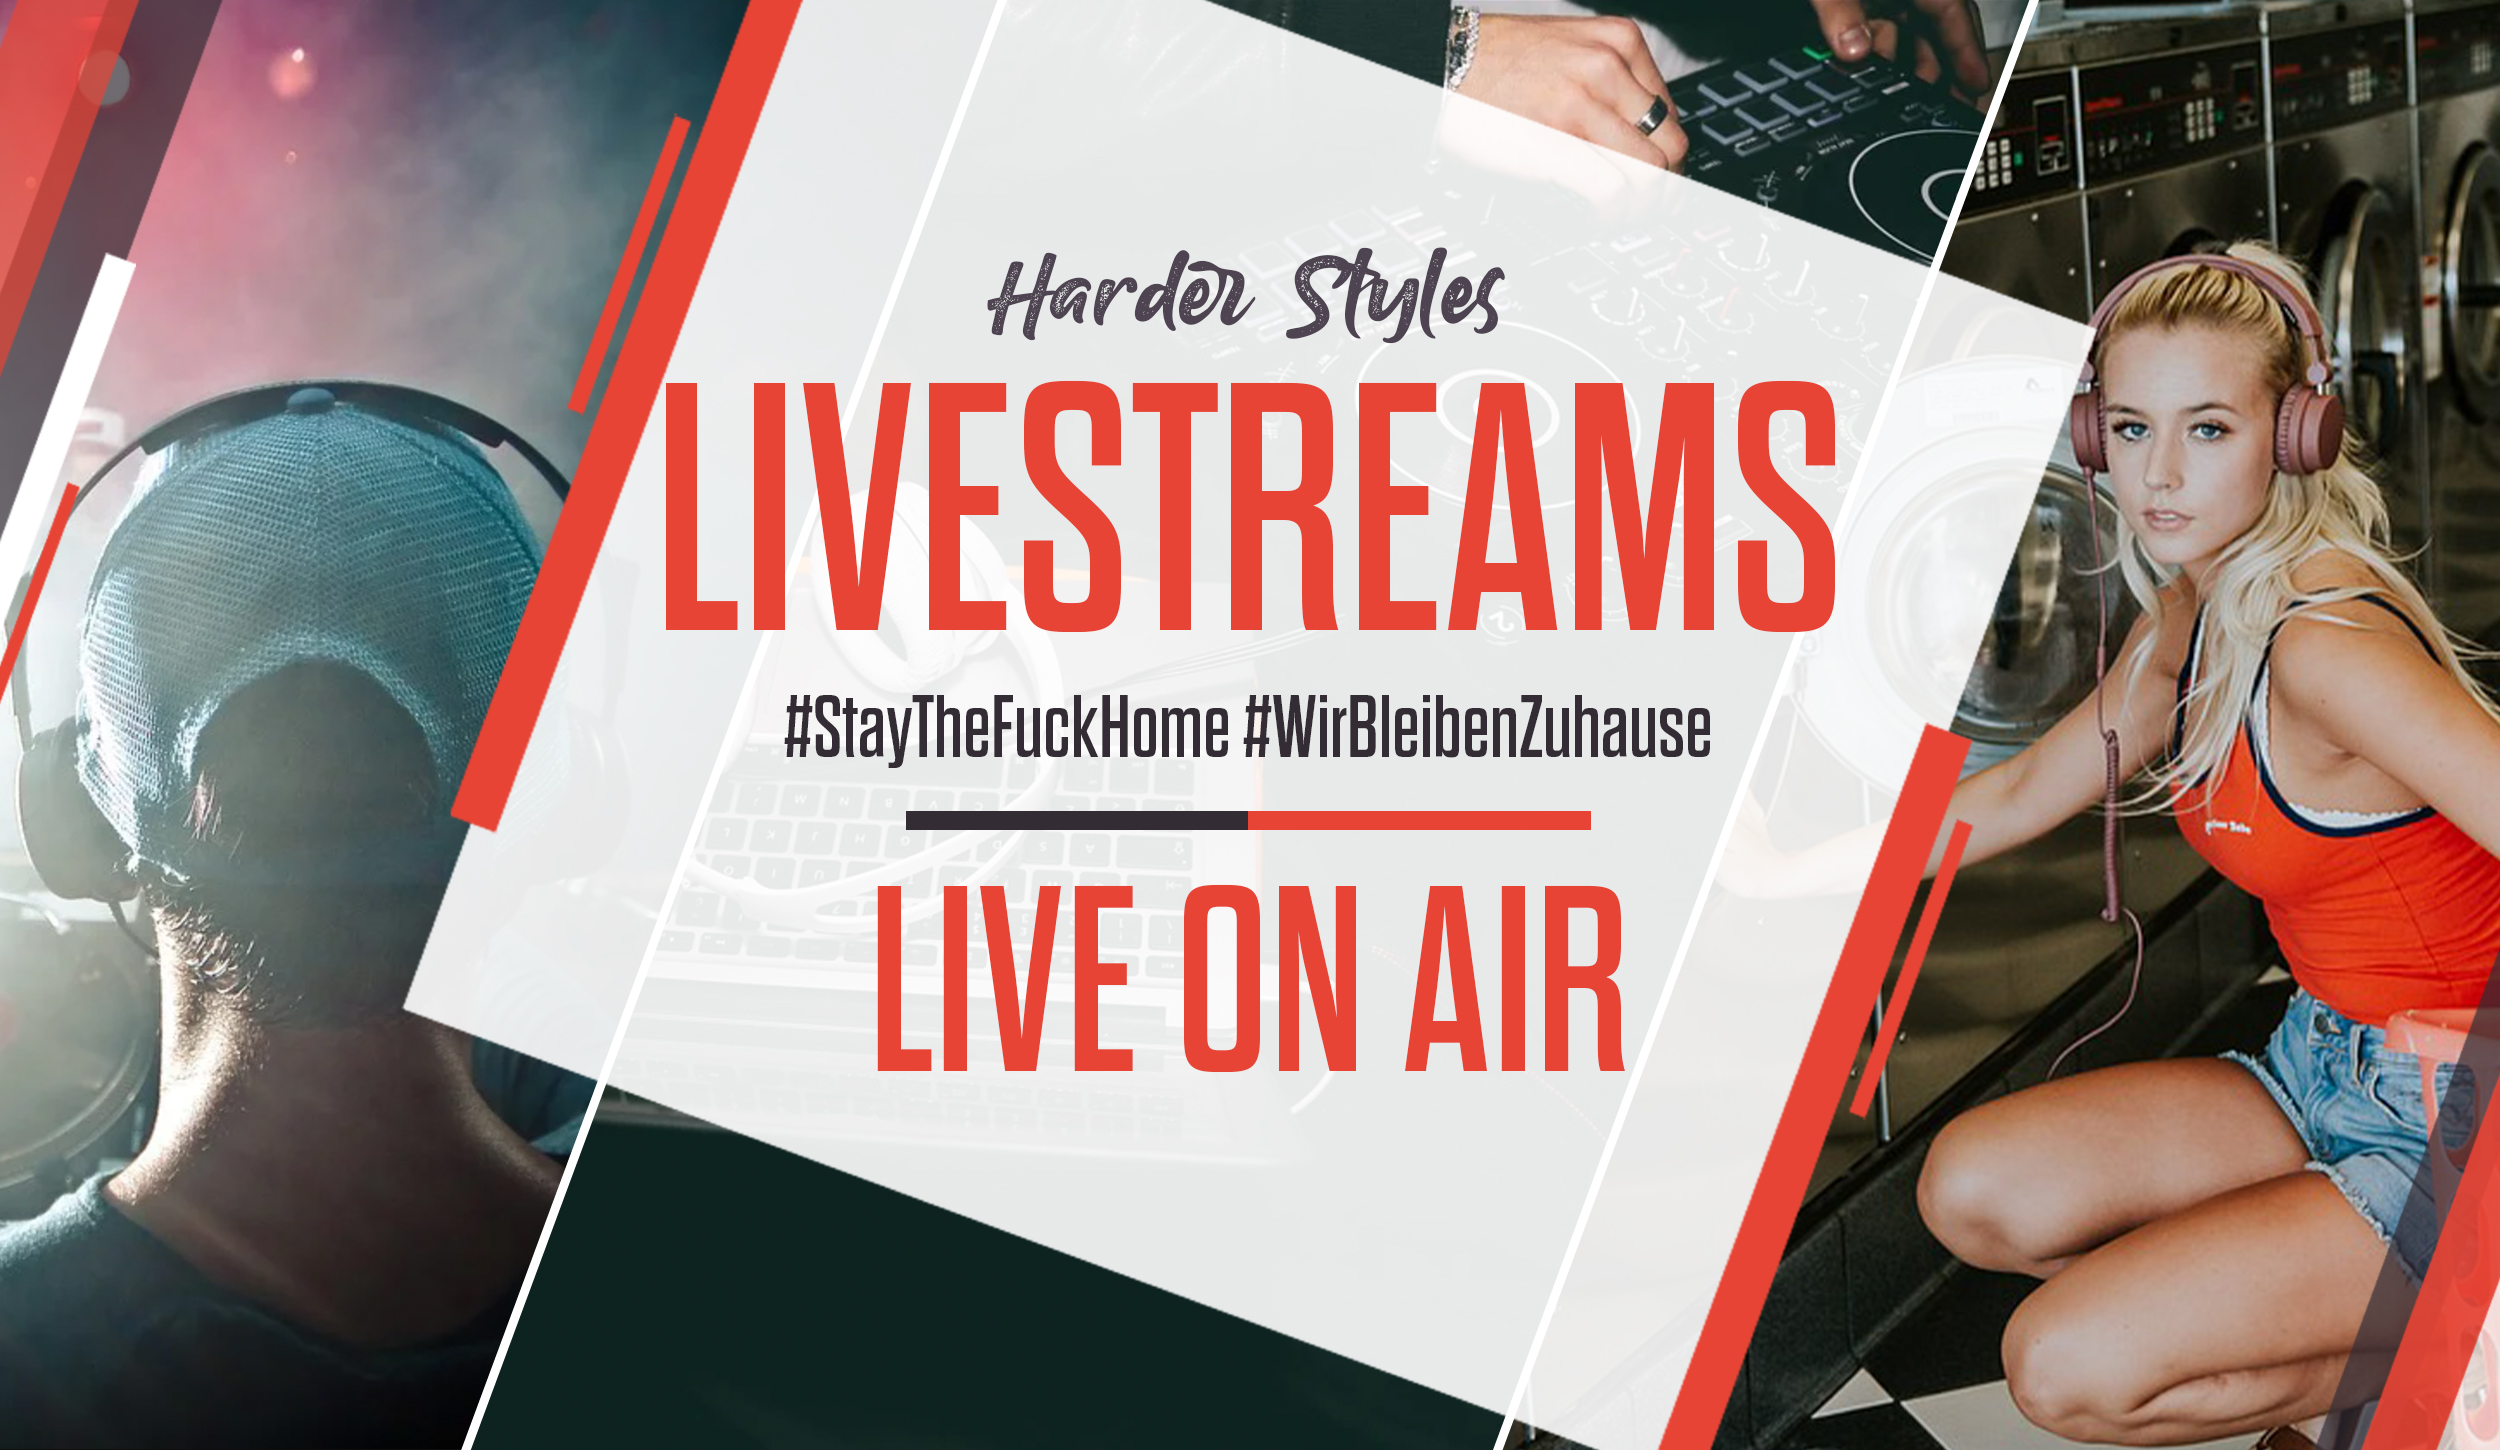 Harder Styles Livestreams